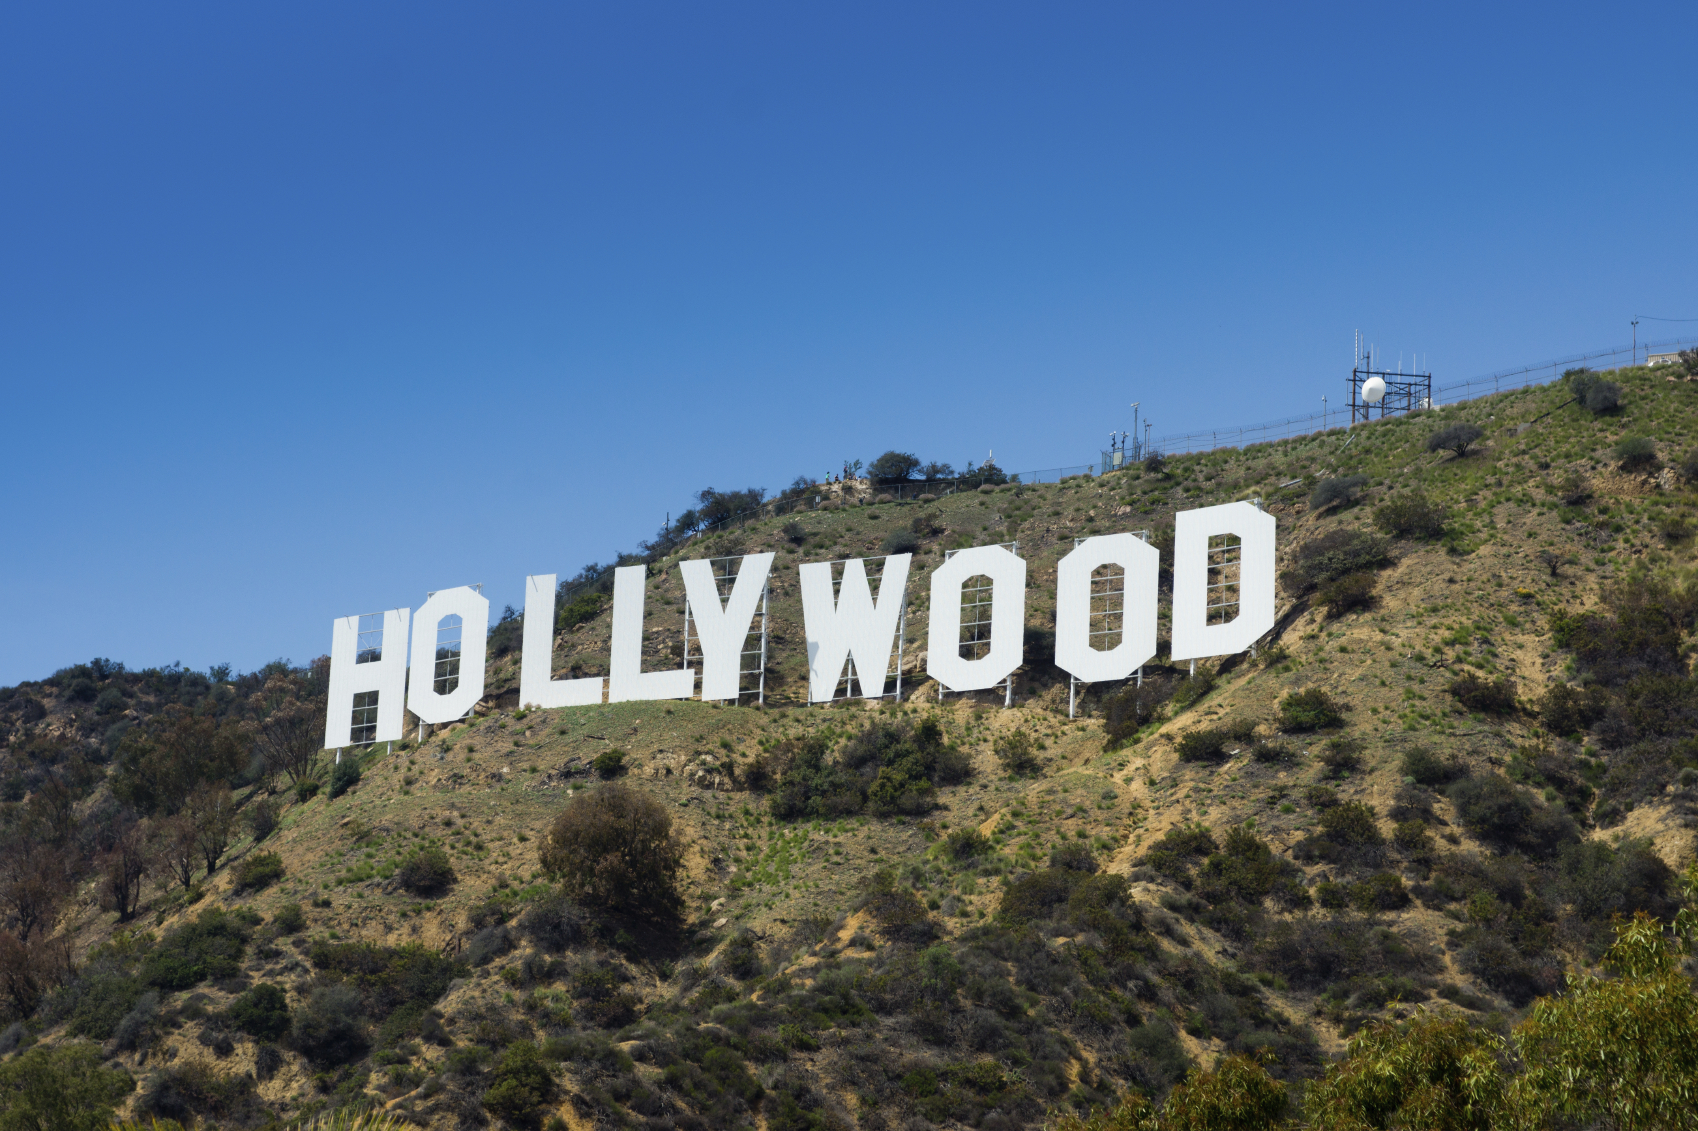 Hollywood_Sign_iStock_000055671418_Medium.jpg